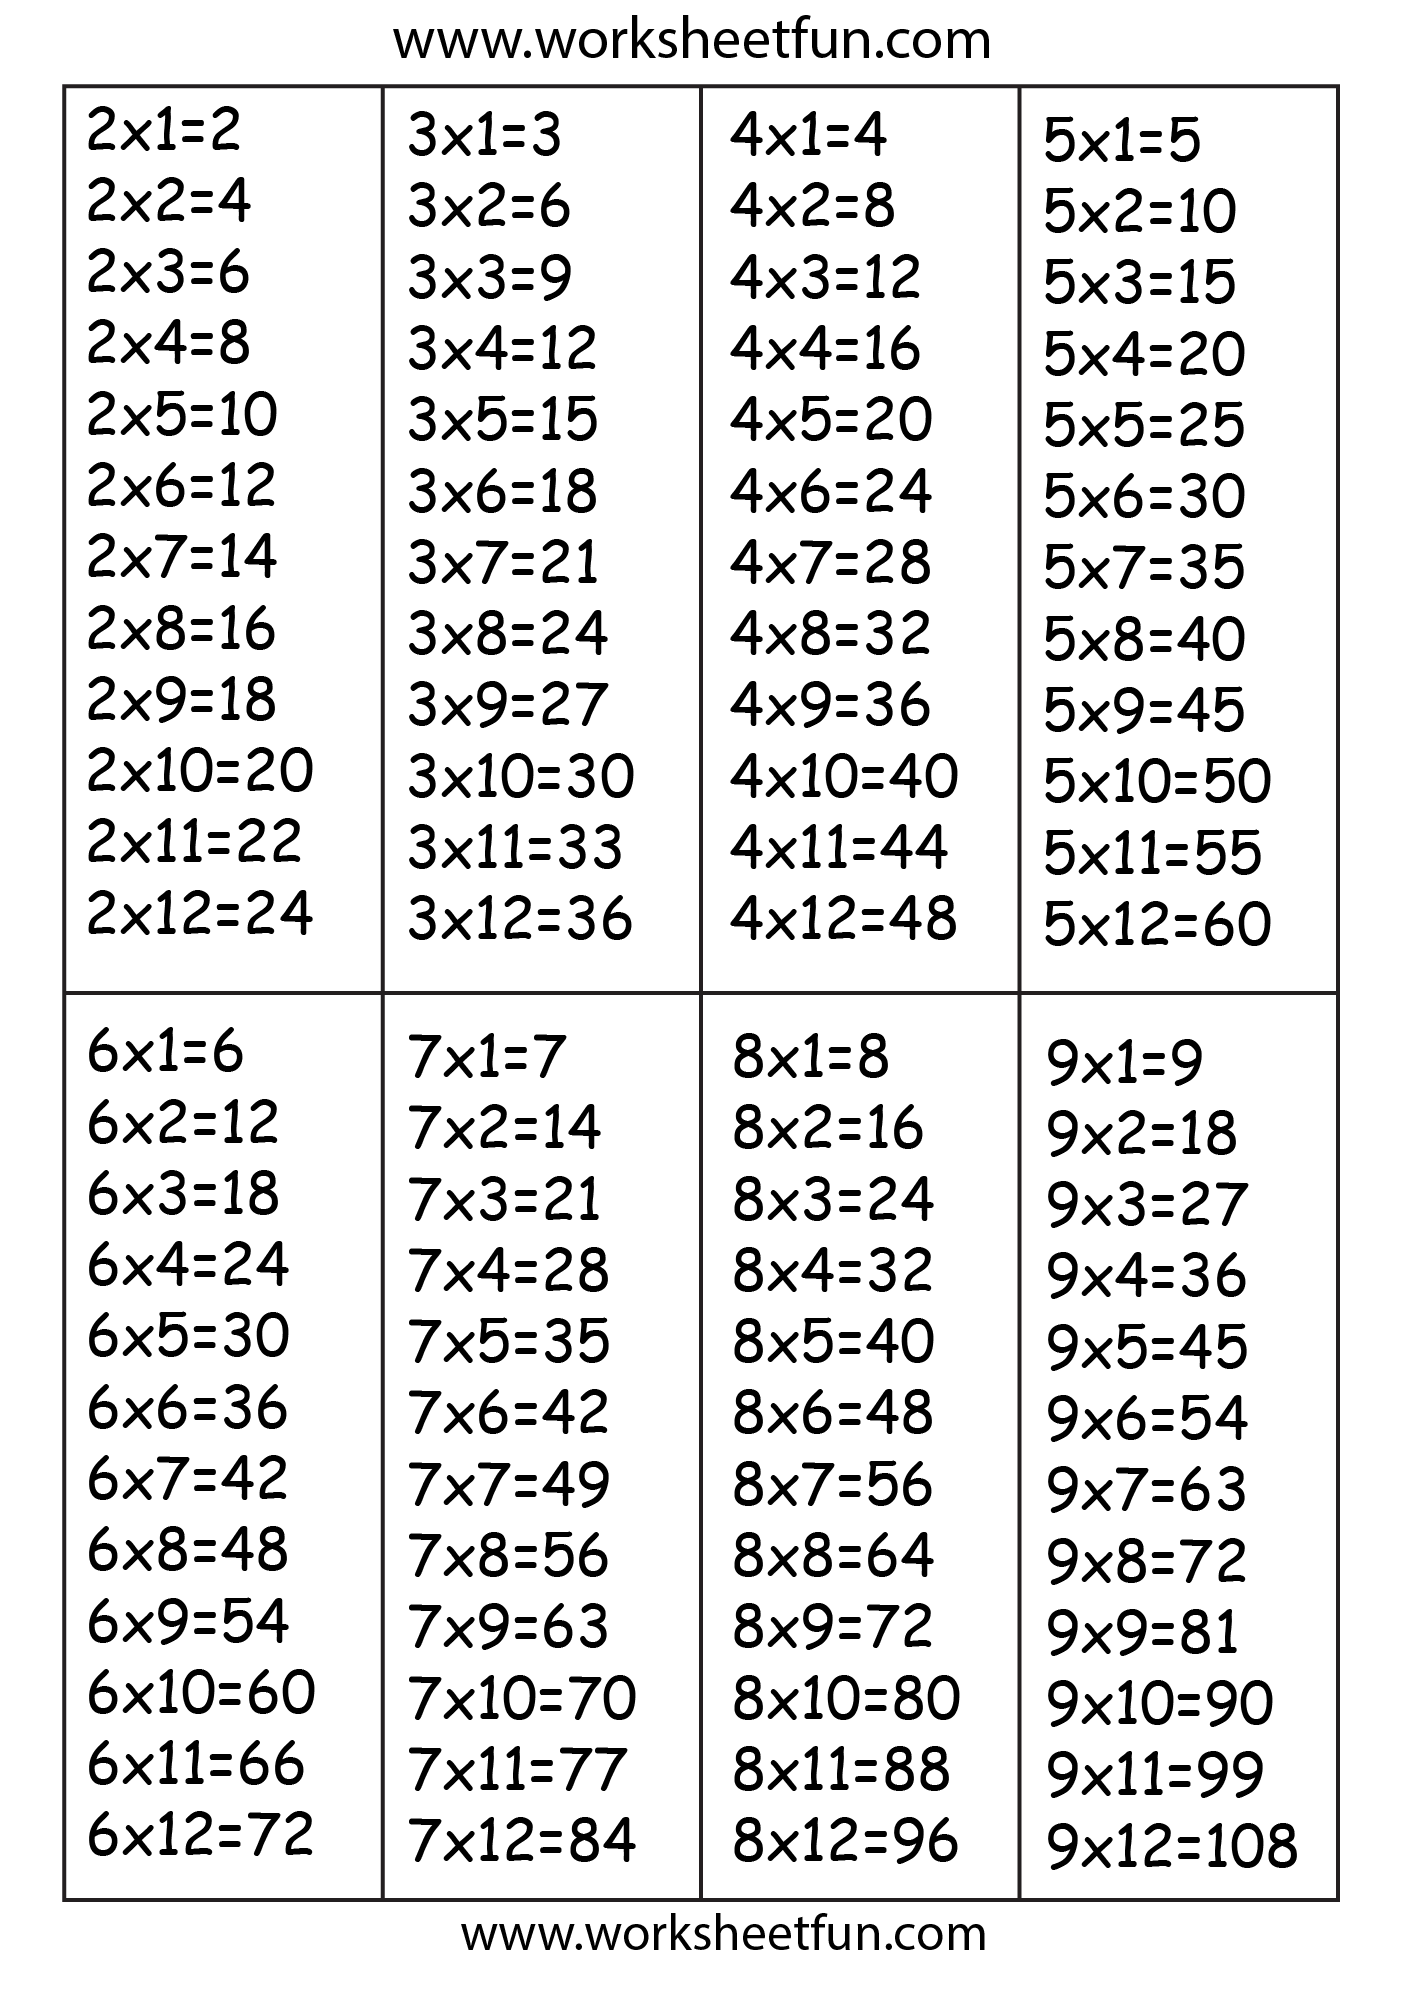 Times Tables FREE Printable Worksheets Worksheetfun – Multiplication Worksheets 2 3 4 5 10